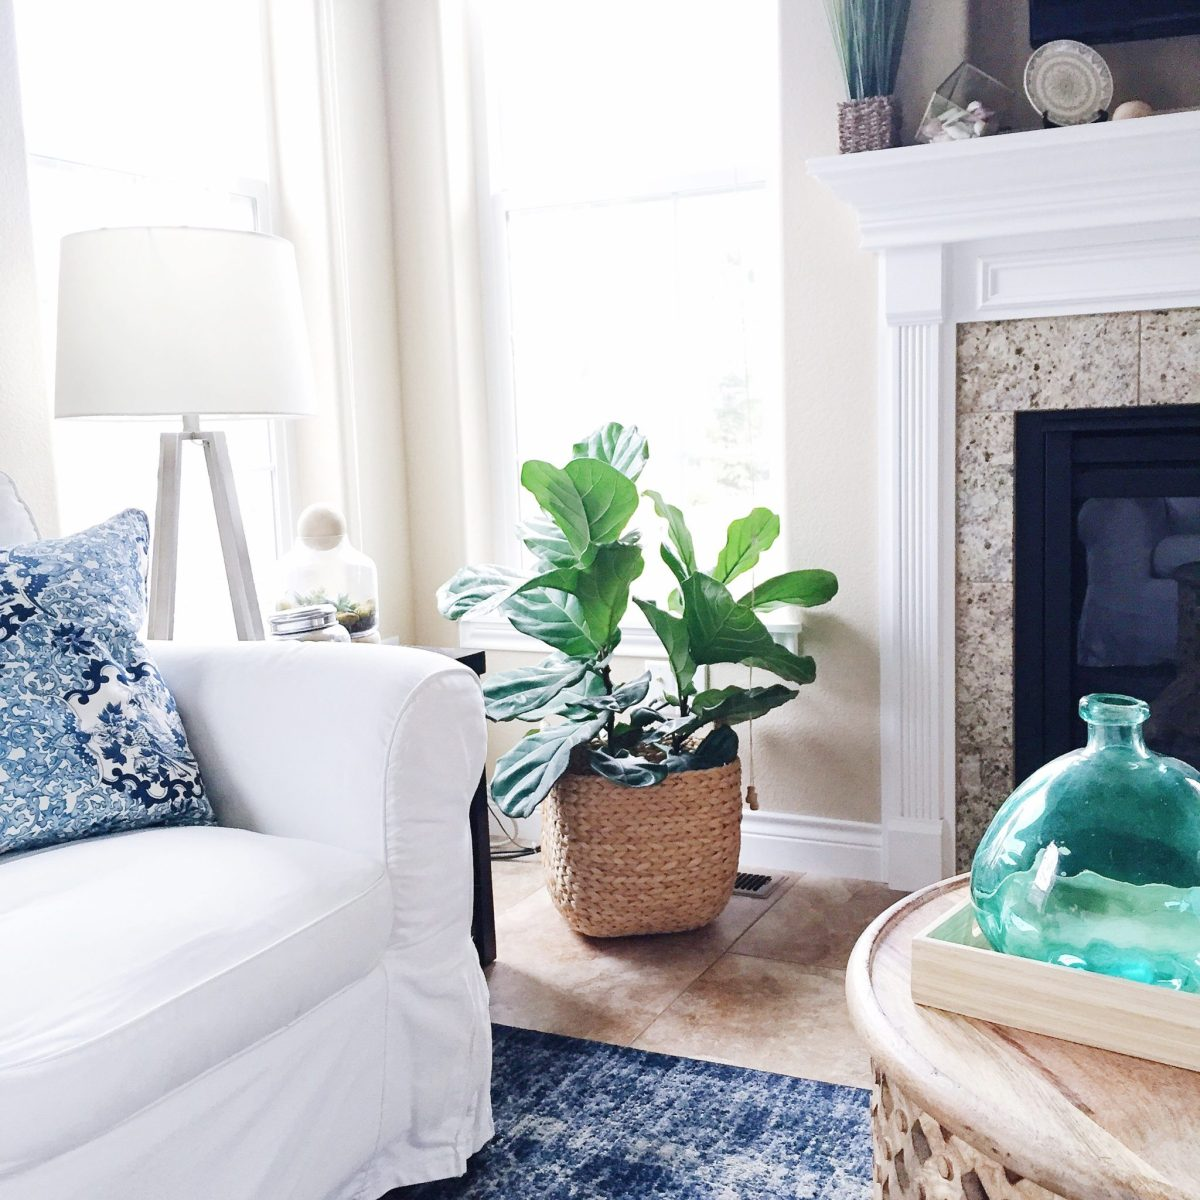 Shop the Rug Sale at Target and get 40% off today only!